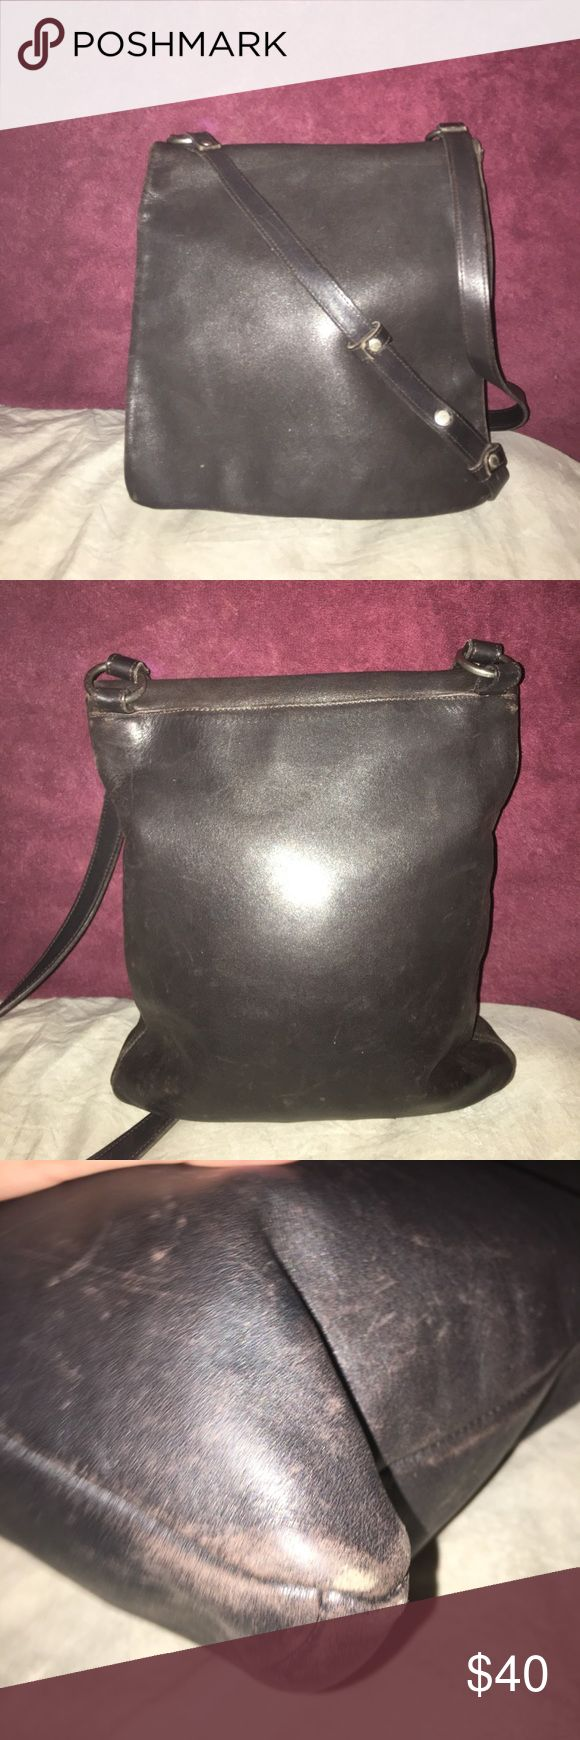 "Vintage Coach Legacy chelsea hippie flap crossbody color black show some scratches and fading super rare flap crossbody measurements are 11.5"" by 10"" Coach Bags Crossbody Bags"